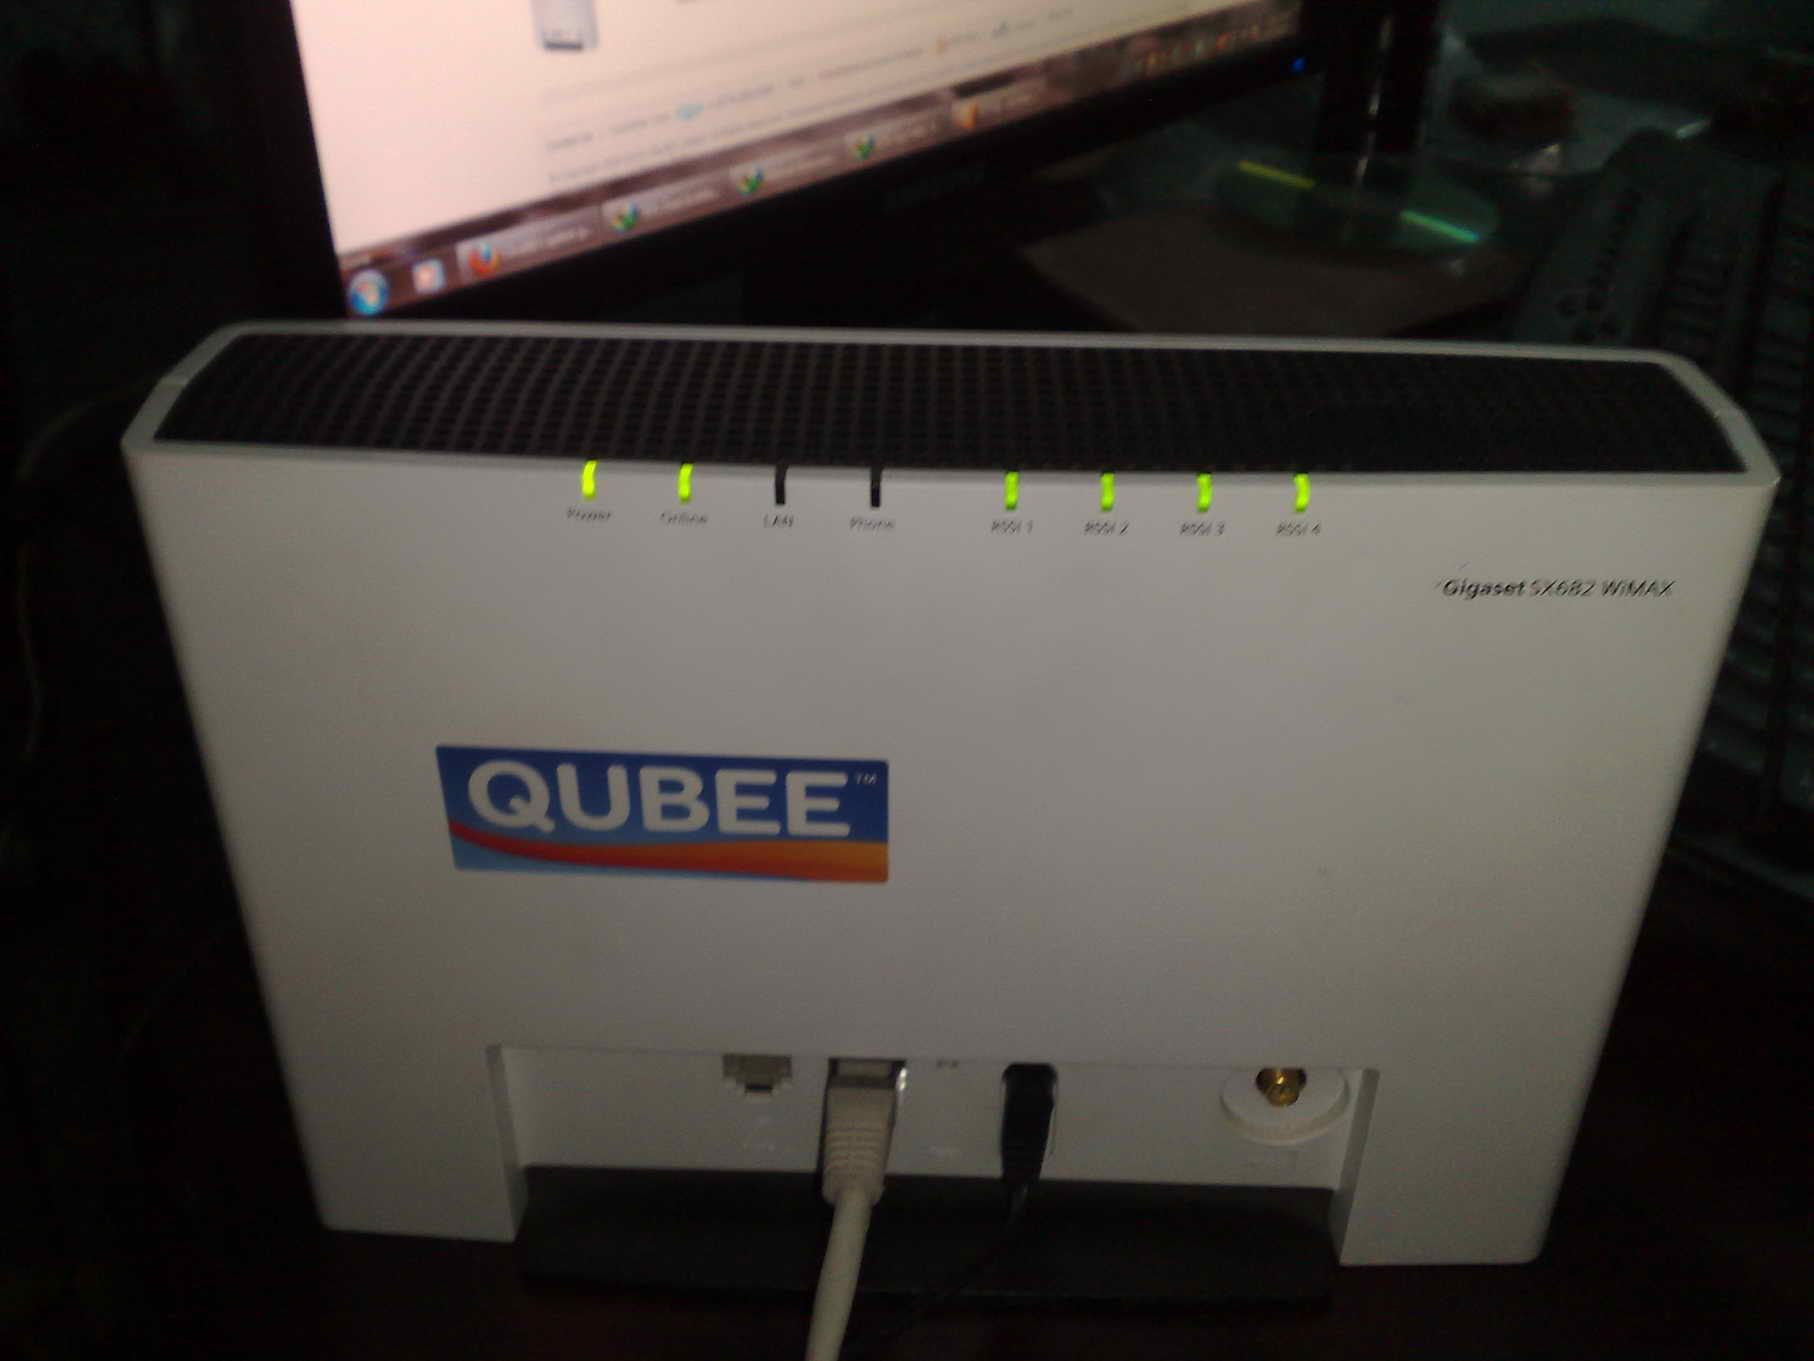 qubee shuttle prepaid modem 1mbps Qubee dongle prepaid modem(new) in wifi, routers & modems, networking, computers - best price in bangladesh tk 1,500 from mirpur, dhaka | clickbd .